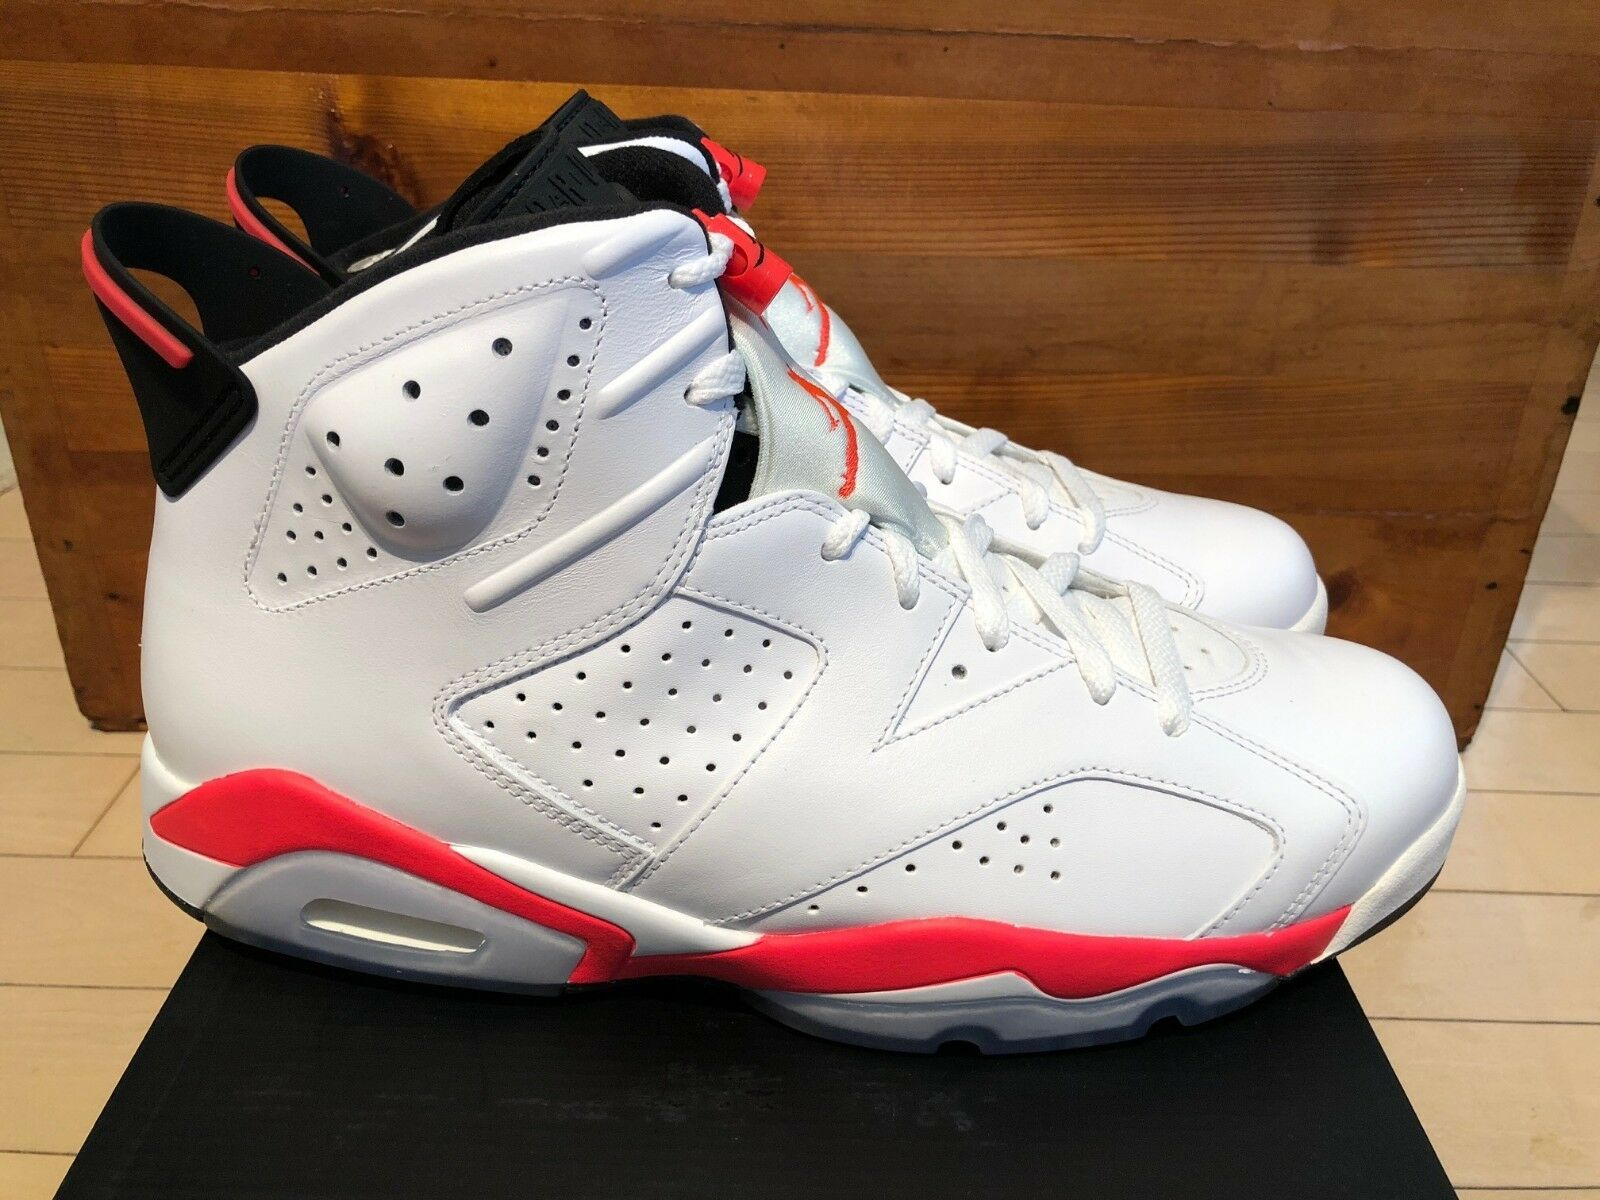 2018 Nike Air Jordan VI 6 Retro Infrared White size 13